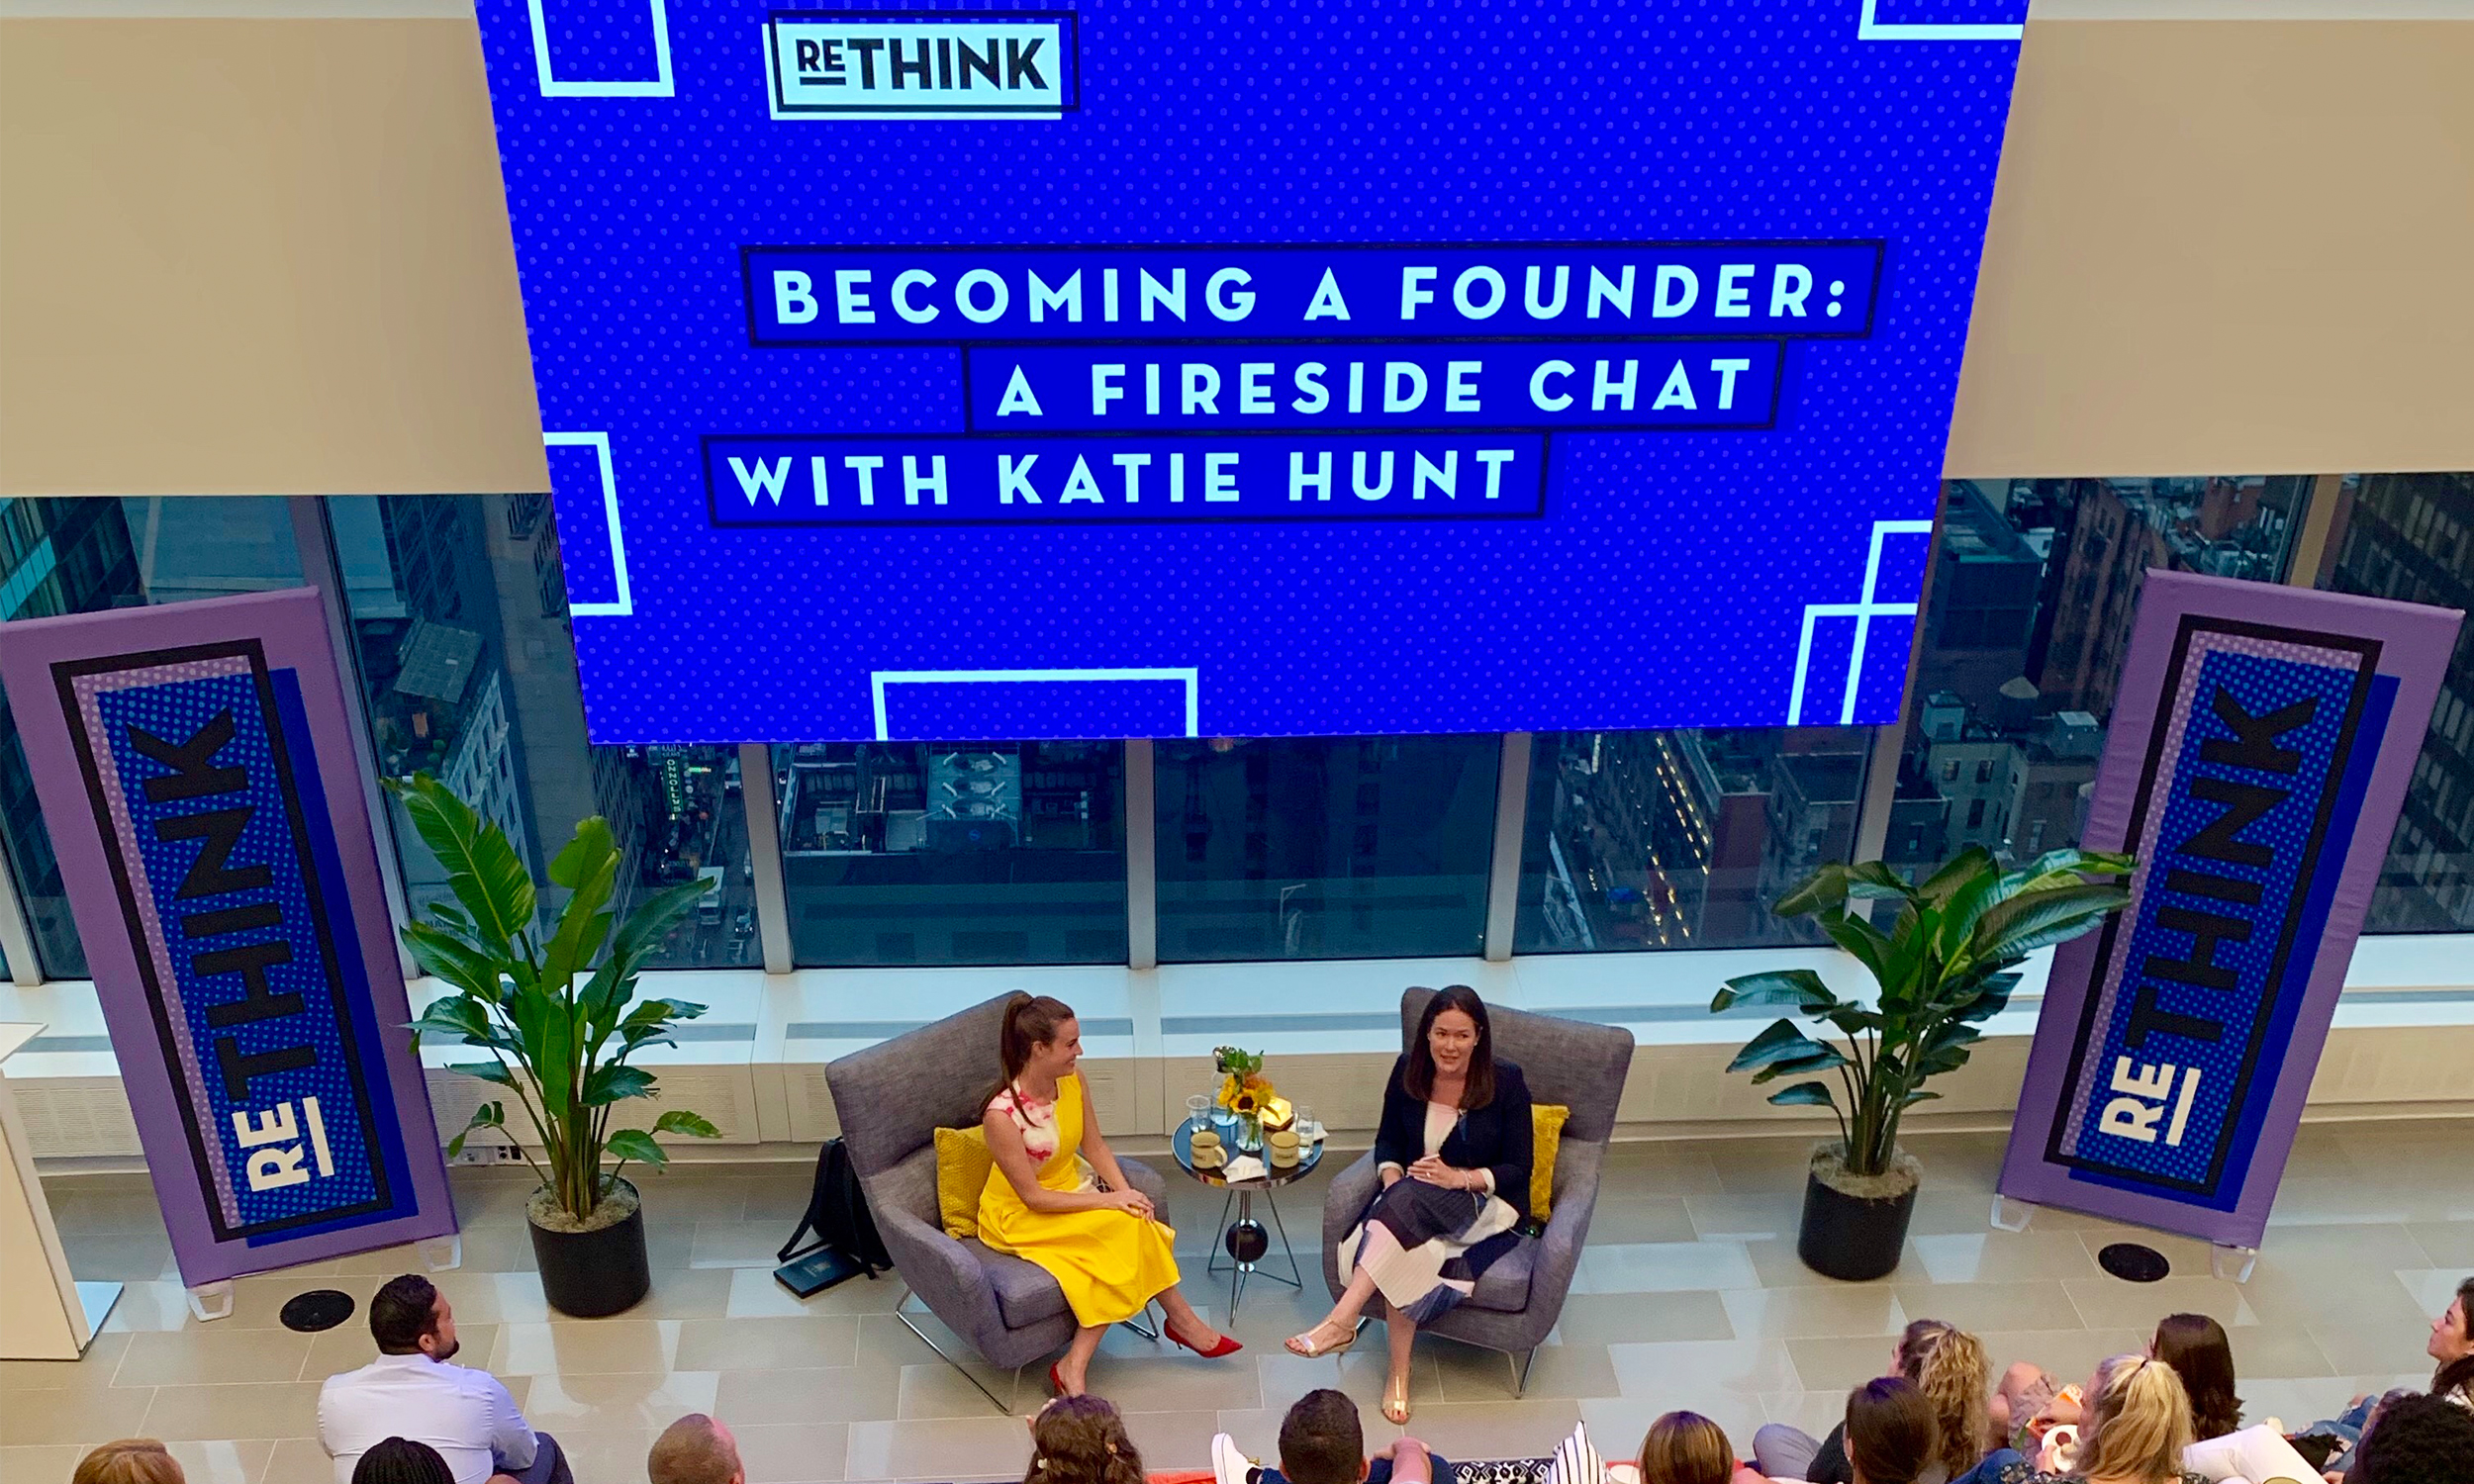 Hunt and McKee treated Viacom Ad Solutions with quite the fun and insightful fireside chat